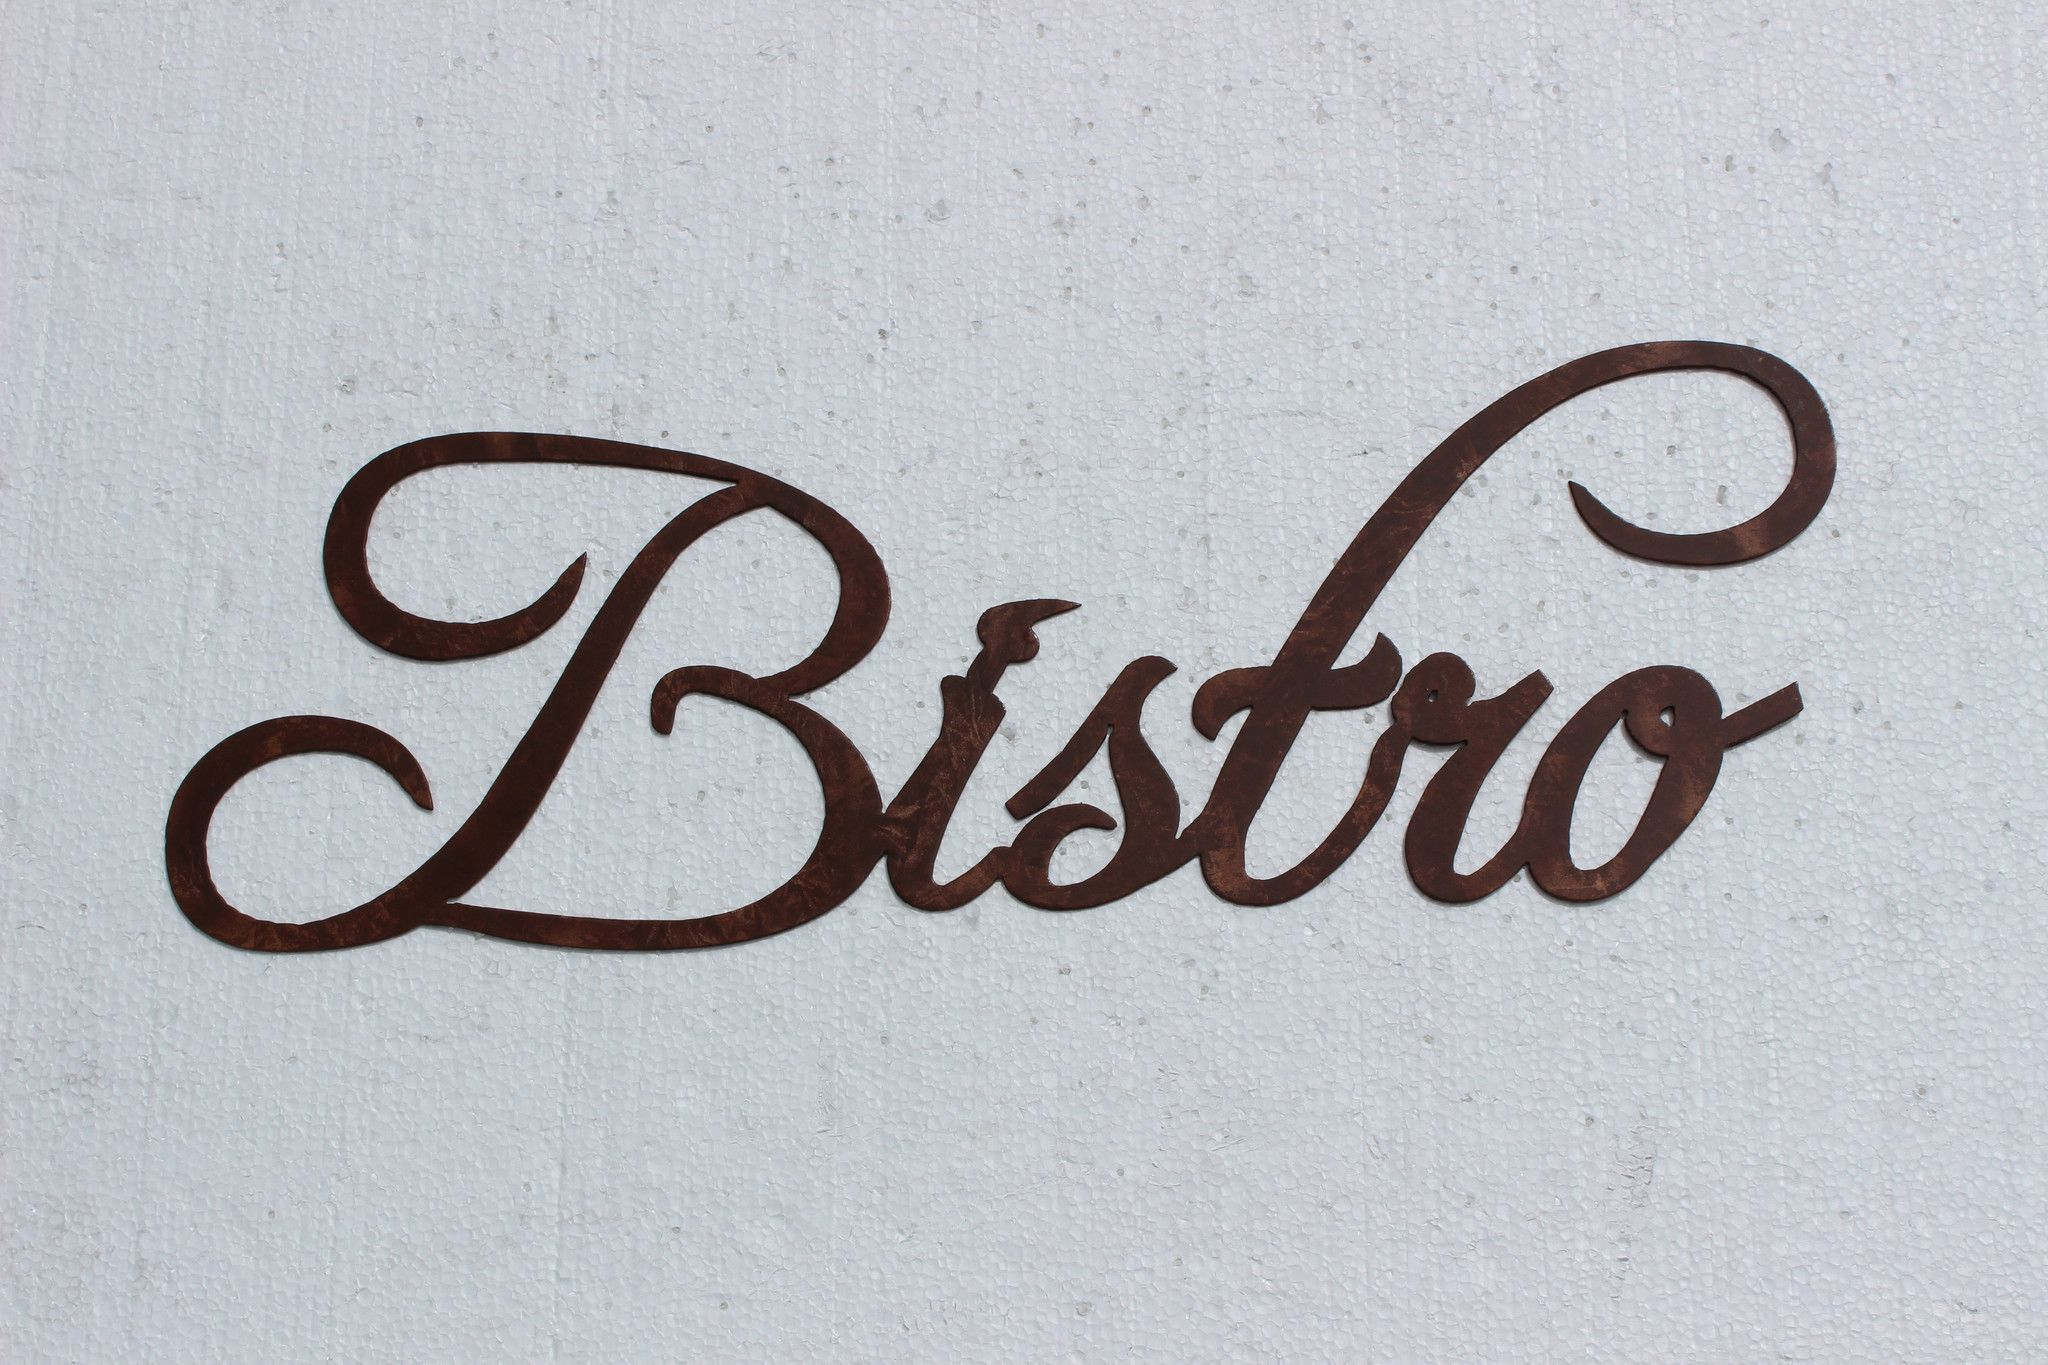 Bistro Word Kitchen Decor Metal Wall Art   Copper color, Metal wall ...